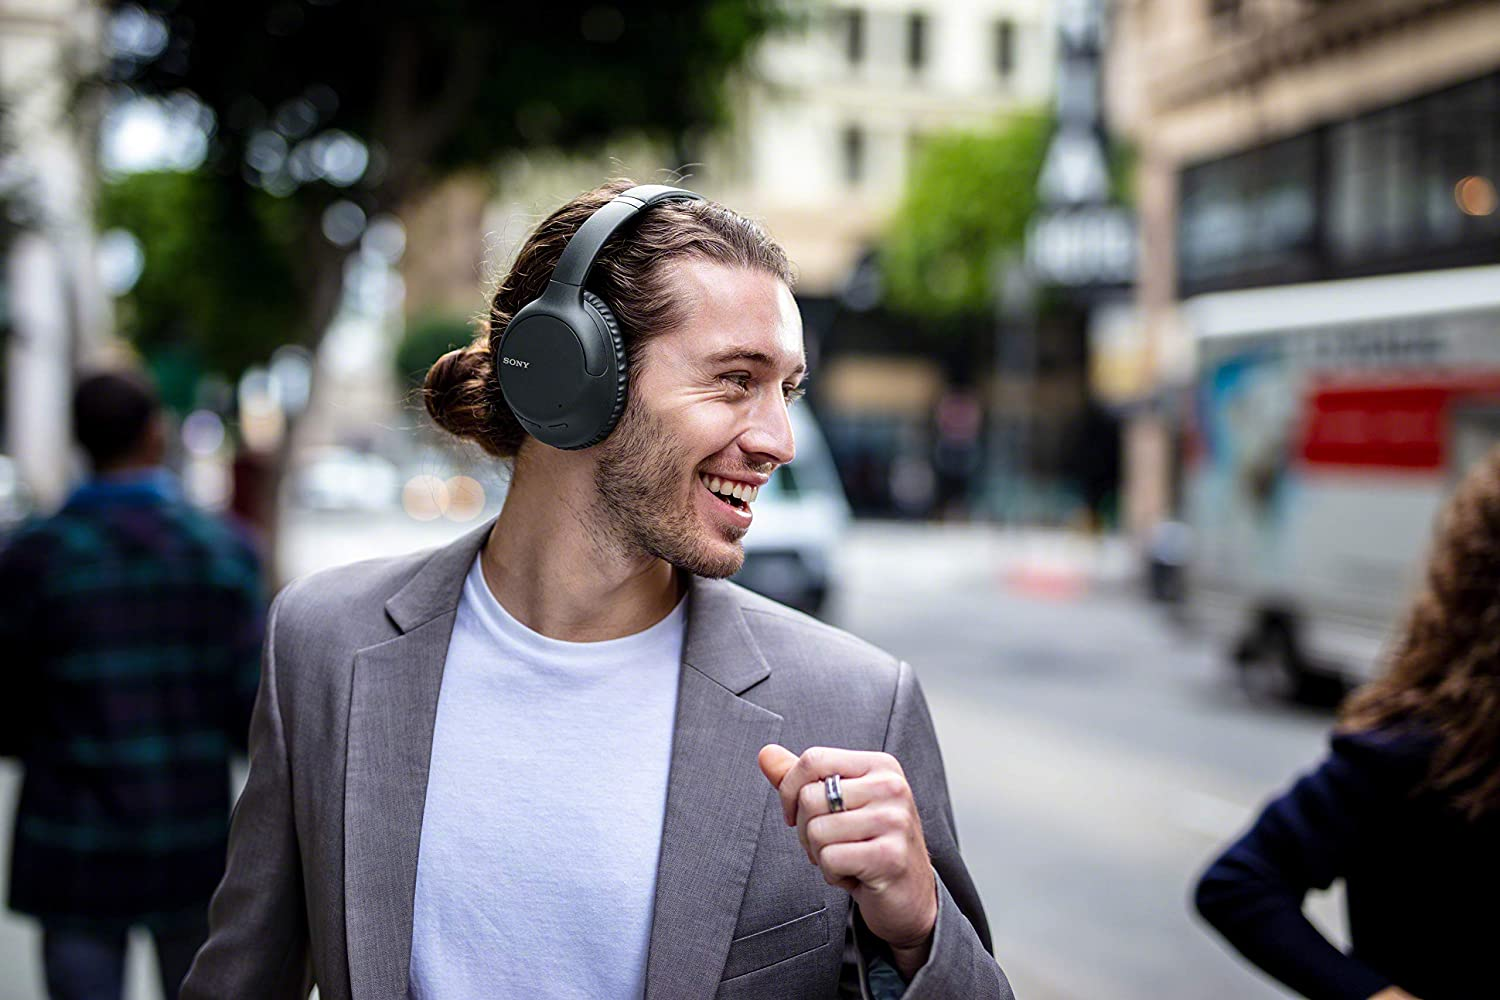 $200 Sony noise cancelling headphones are down to $98 at Amazon